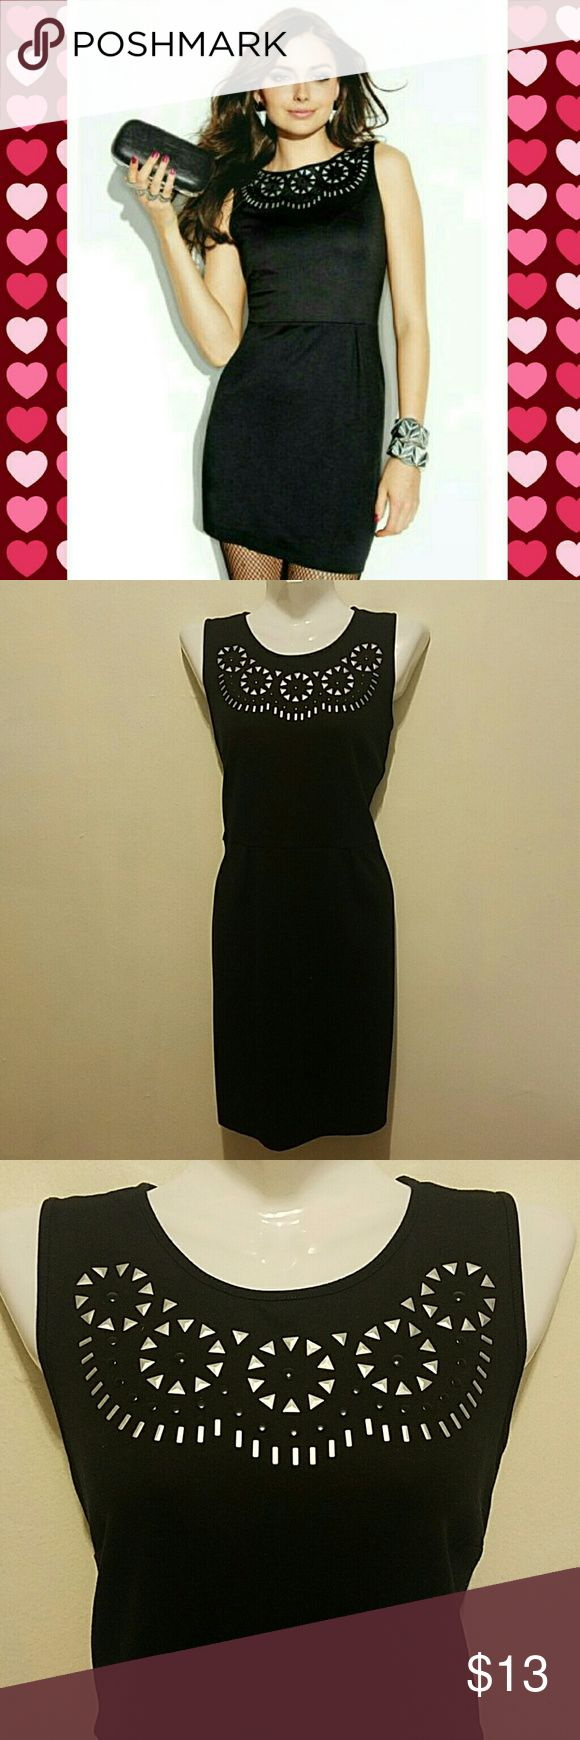 Little black dress BOGO SALE!! Sleeveless dress with boat neck and beautiful metallic embellishment in front.zipper on back,soft material.just wore once.excellent condition. mark from avon Dresses